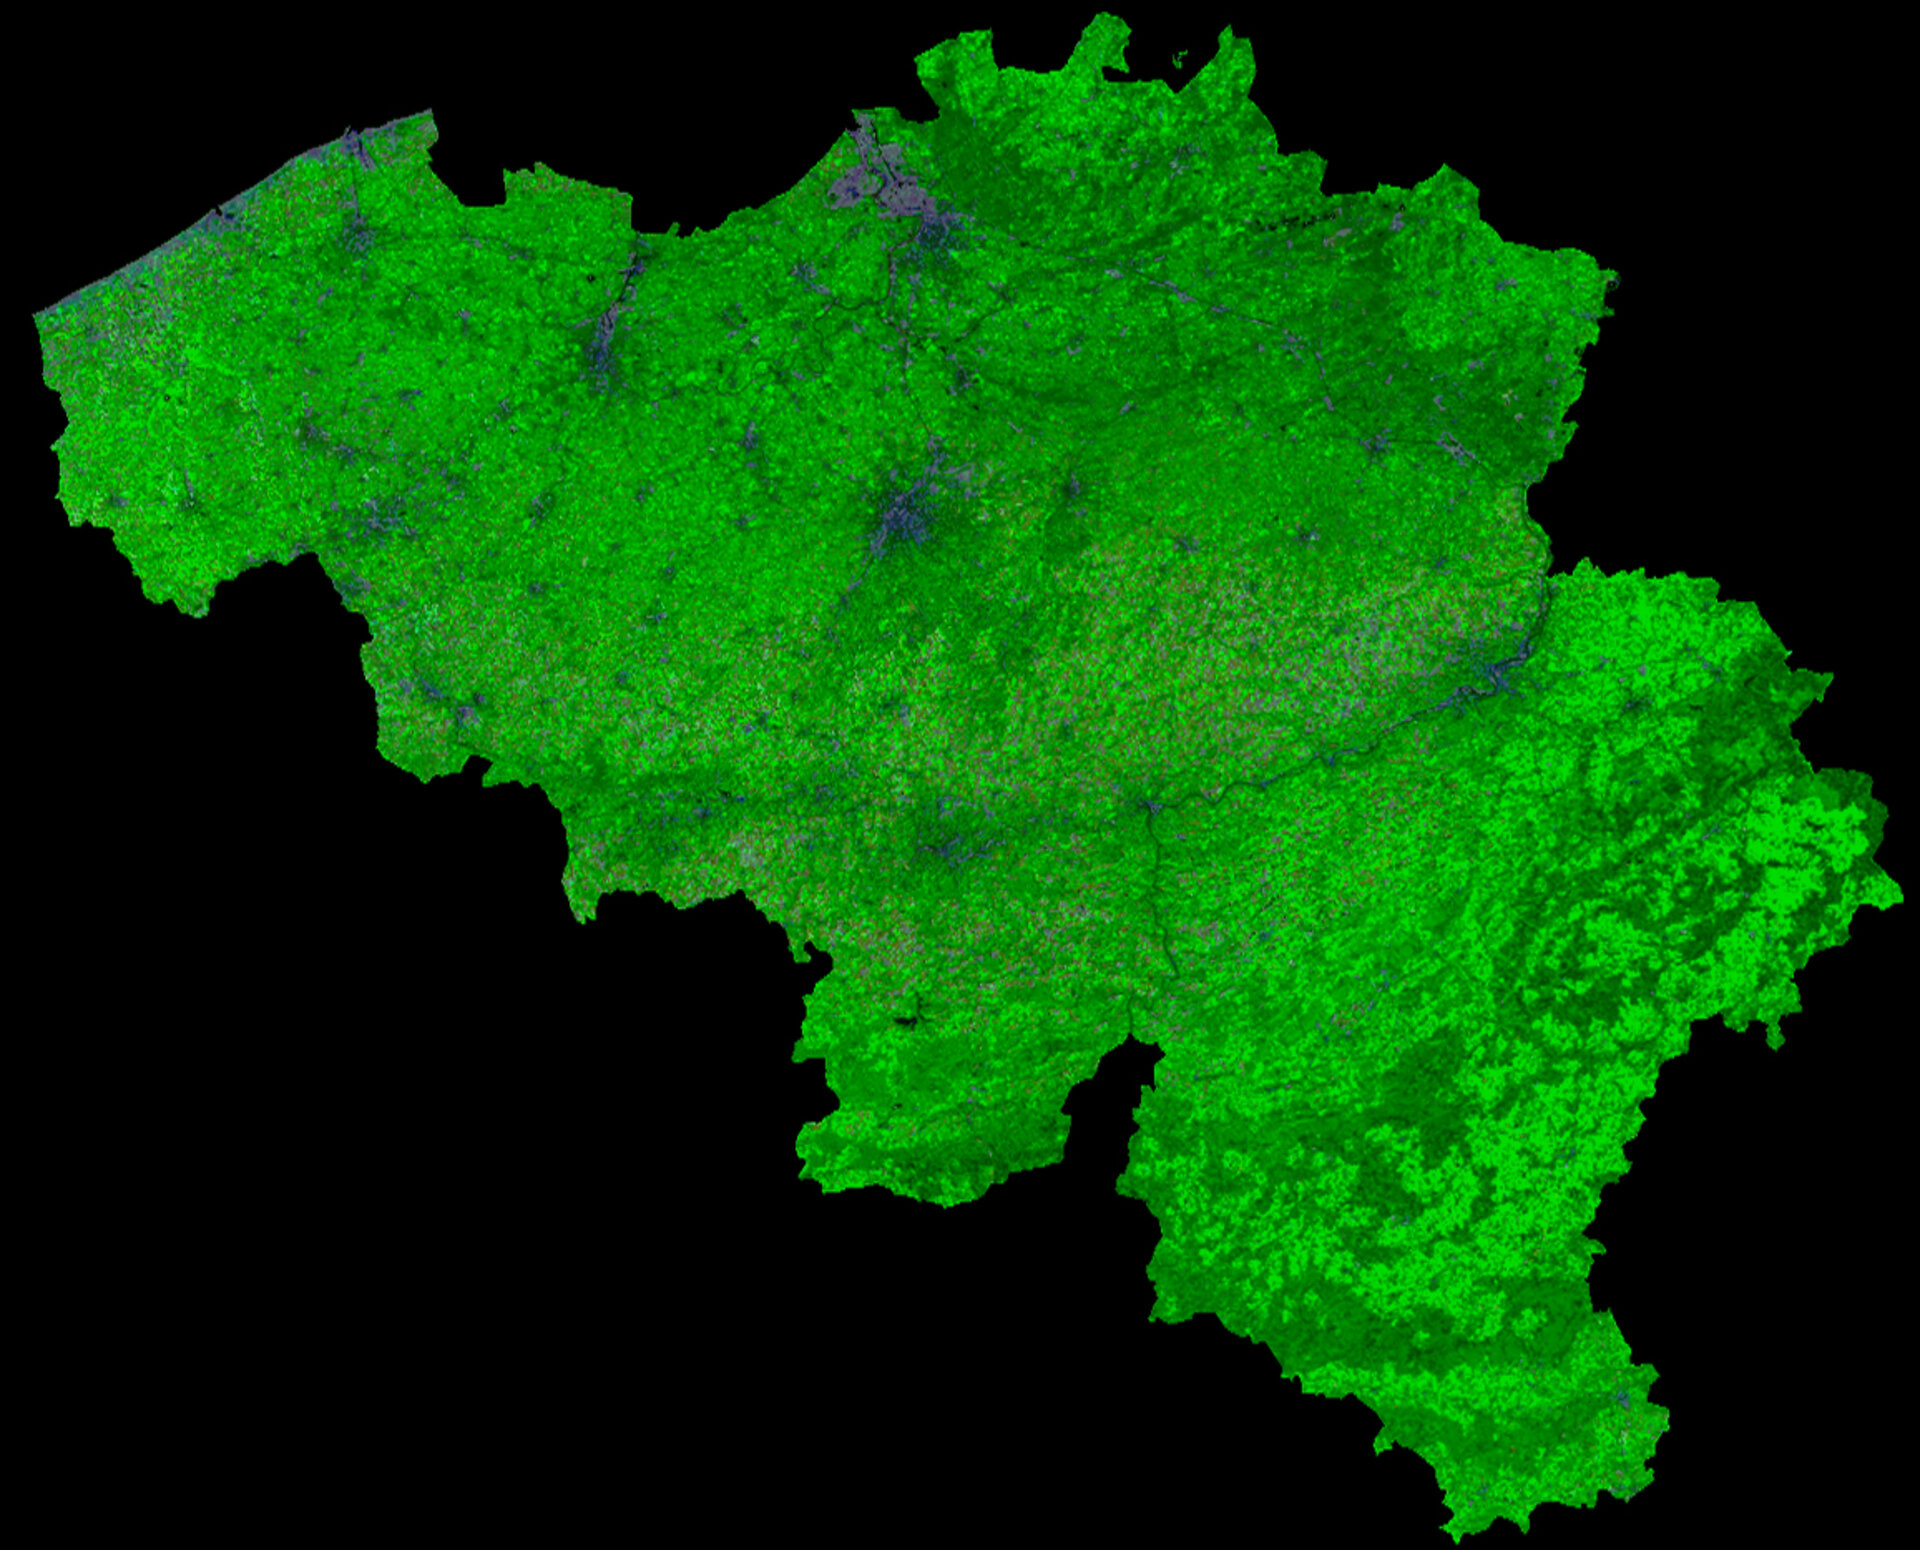 A cloud-free image of Belgium, acquired by ESA's Proba-V satellite